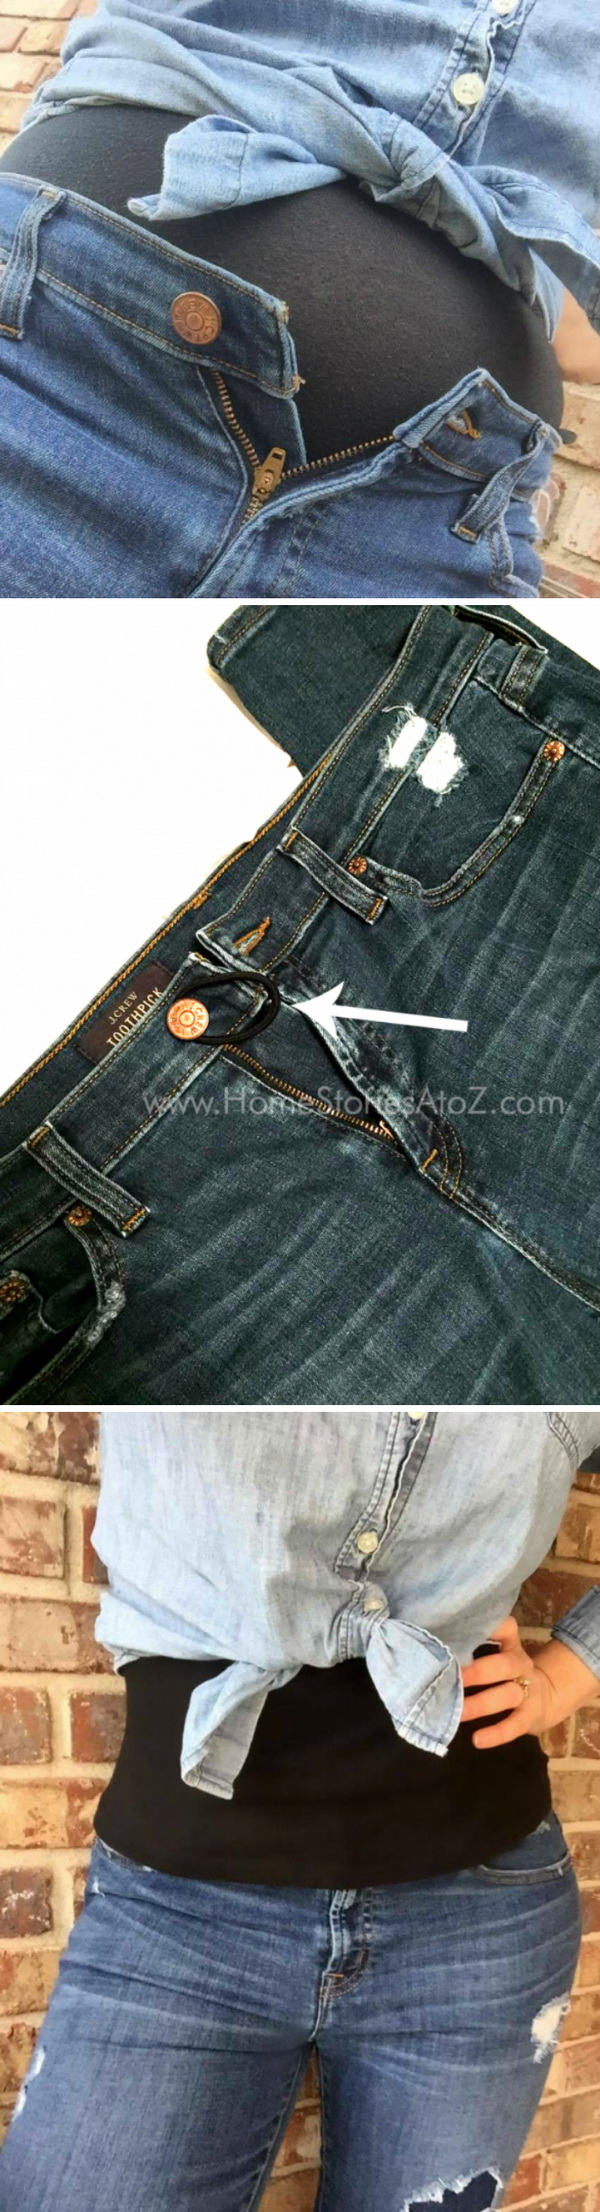 How To Button Tight Pants with a Hair Tie: Just buttoning tight pants with an elastic hair tie will make things much easier!